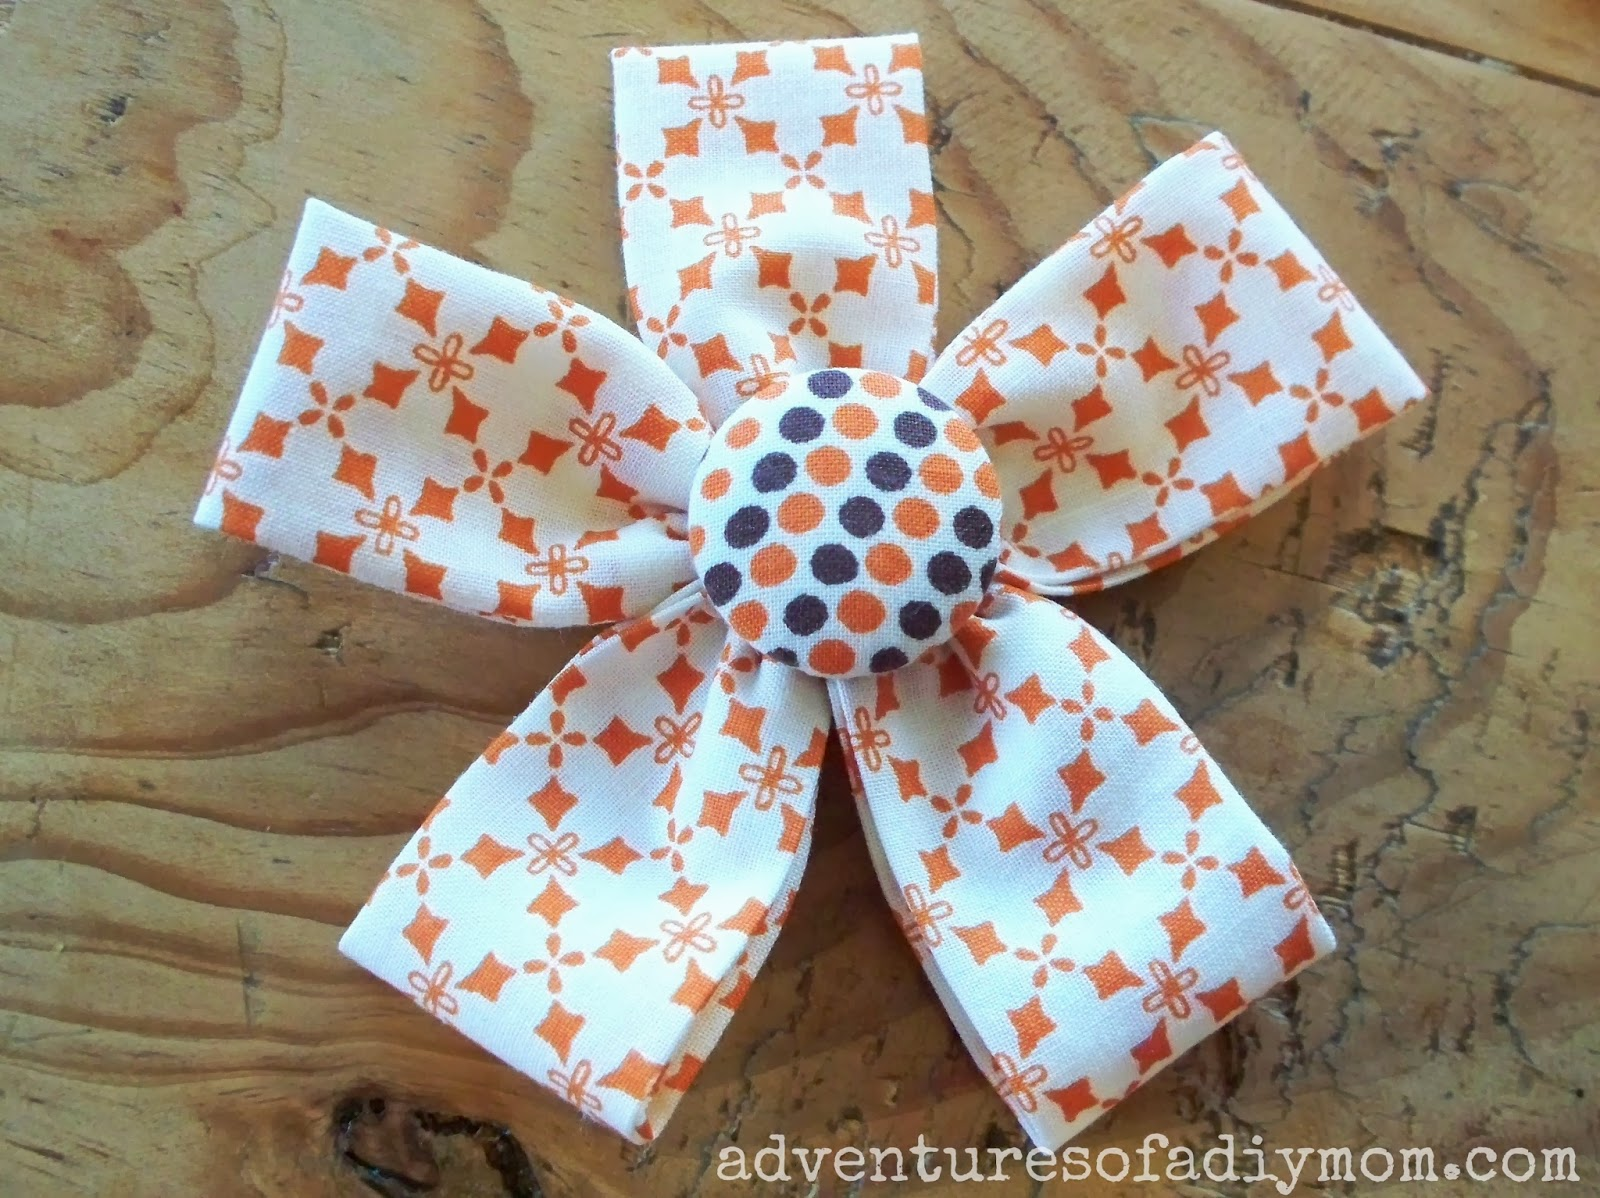 How to Make Fabric Flowers Adventures of a DIY Mom